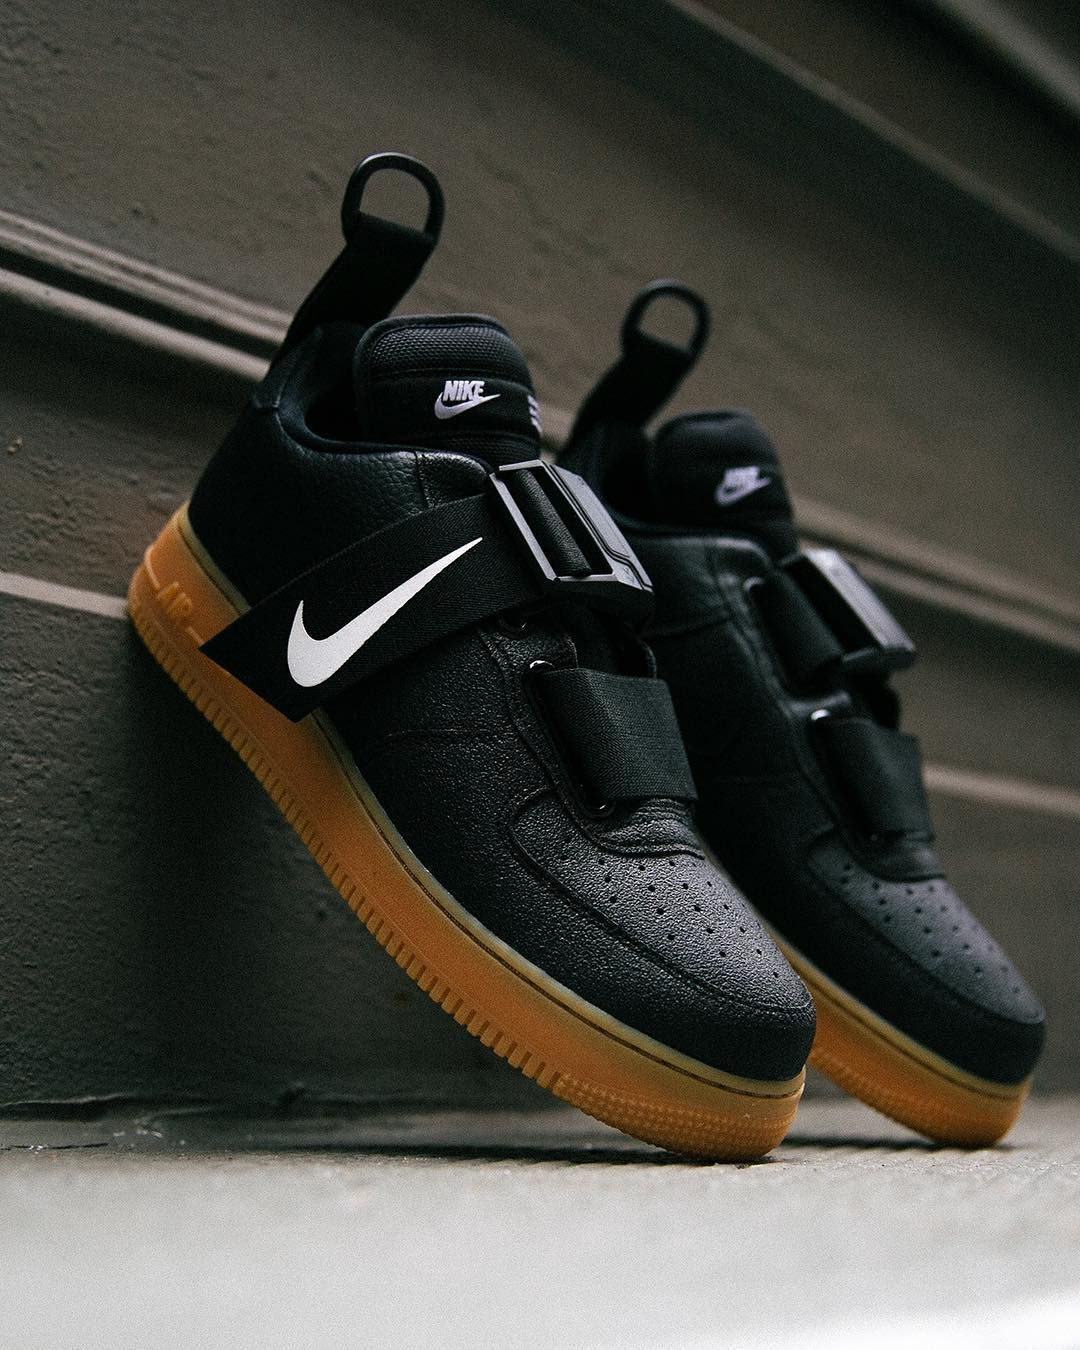 low priced 42e1d 4da5f  Nike Air Force 1 Utility  Black Gum  +  Sequoia  Available Now, In-Store  and Online